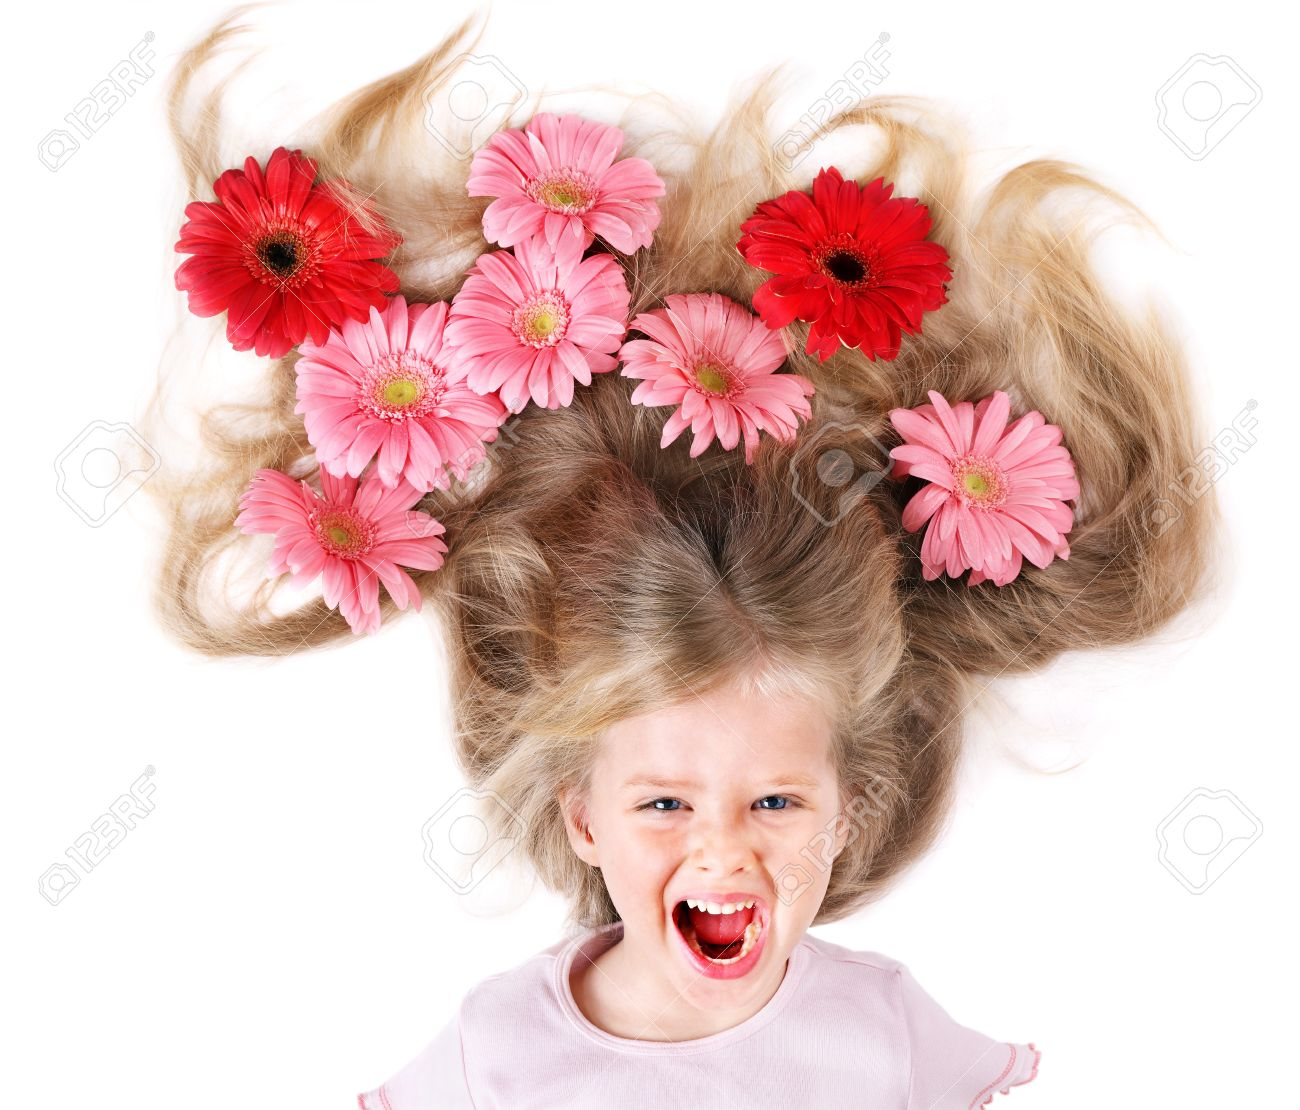 Cute Hairstyles For Little Girls With Long Hair Little Cute Girl With Long